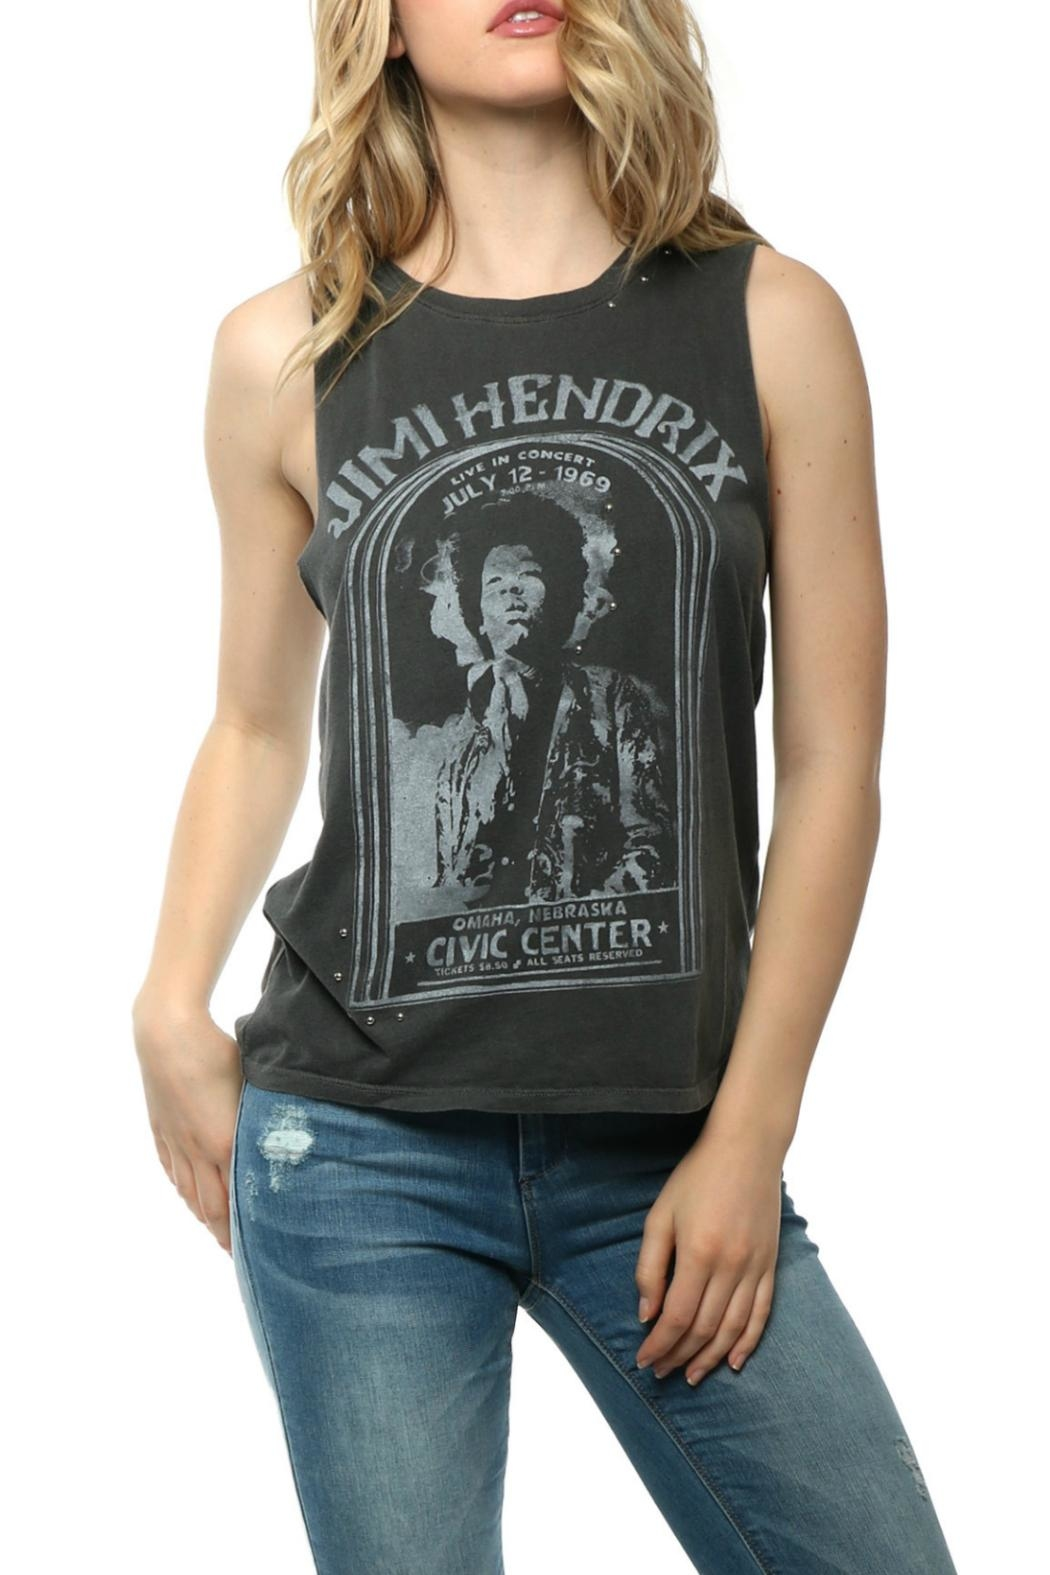 cc561d0e937d1 Daydreamer Hendrix Civic Center Top from Texas by POE and Arrows ...